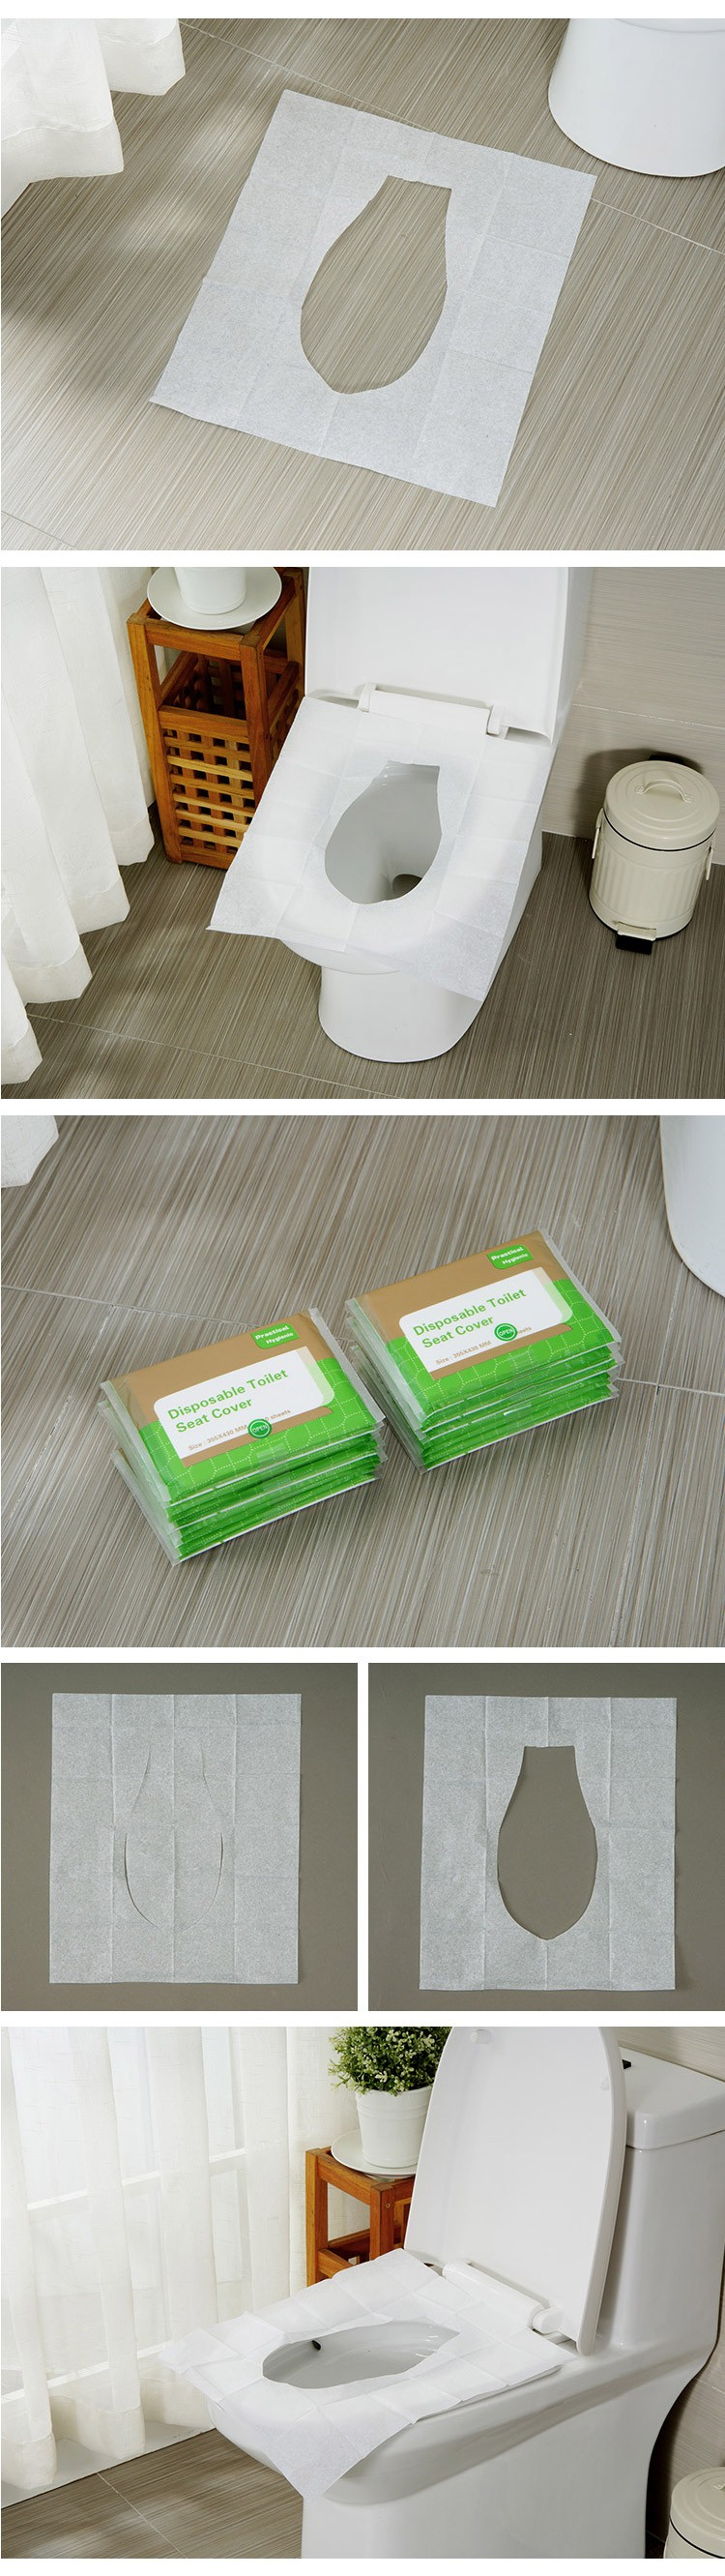 Travel Pack Toilet Seat Cover Paper Flushable Disposable